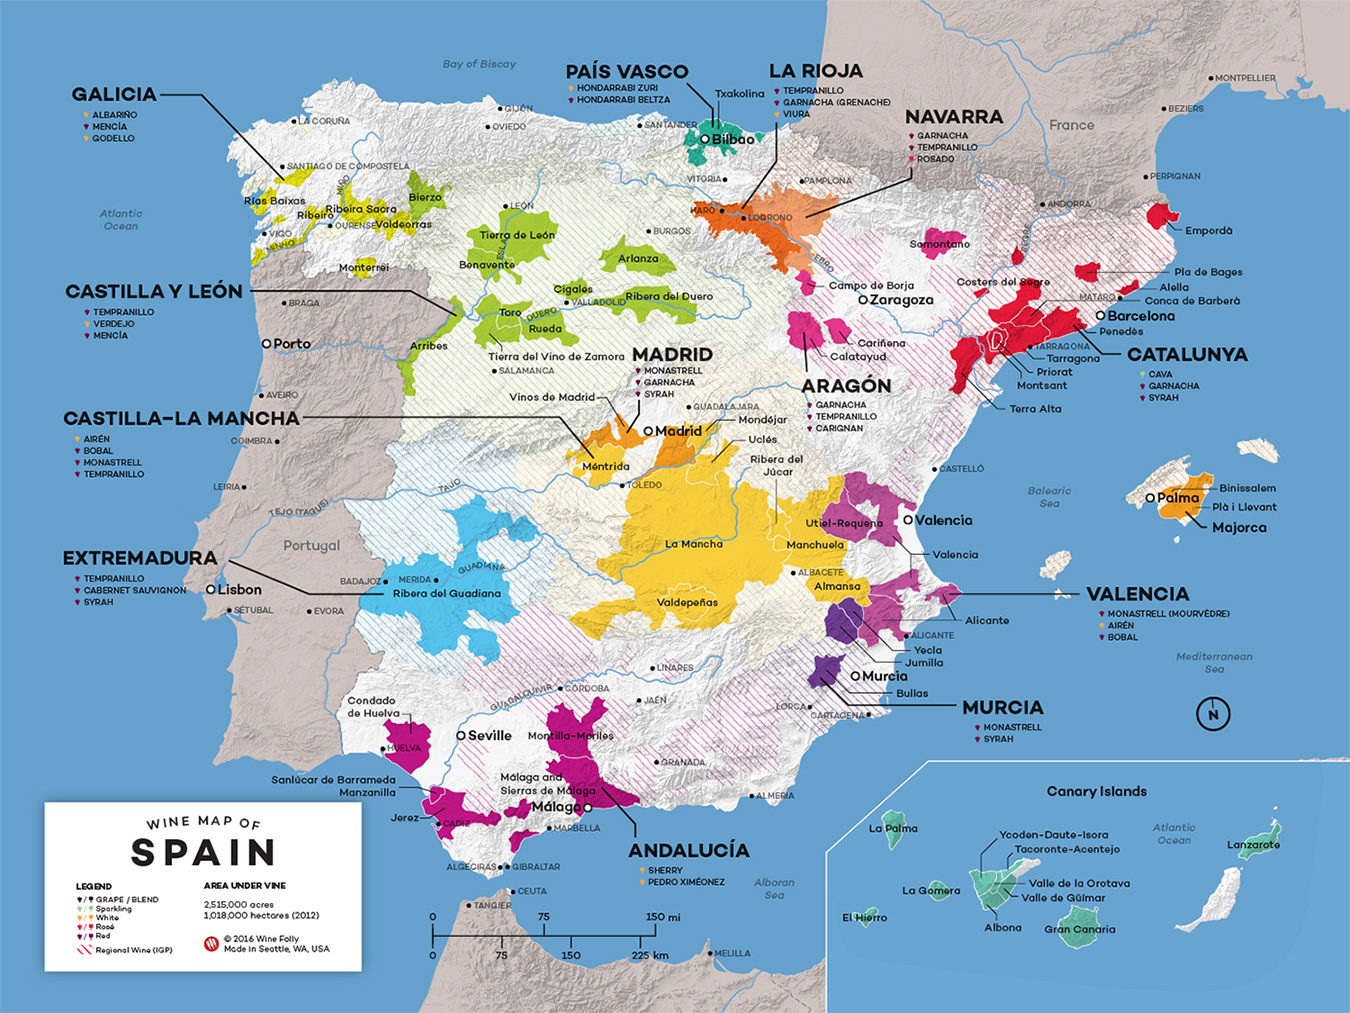 Map of Spain Wine Regions | Wine Folly Geographical Map Of Espana In Spanish on map of austria in spanish, map of dominican republic in spanish, map of spanish speaking world, map of equatorial guinea in spanish, map of china in spanish, map of continents in spanish, map of cities in espana, map of countries that speak spanish, espana capital in spanish, map of united states in spanish, map of puerto rico in spanish, map of egypt in spanish, map of north america in spanish, map of trinidad in spanish, map of barcelona in spanish, map of paraguay in spanish, map of spanish speaking countries, capital of venezuela in spanish, map of england in 1500, map of the world in spanish,